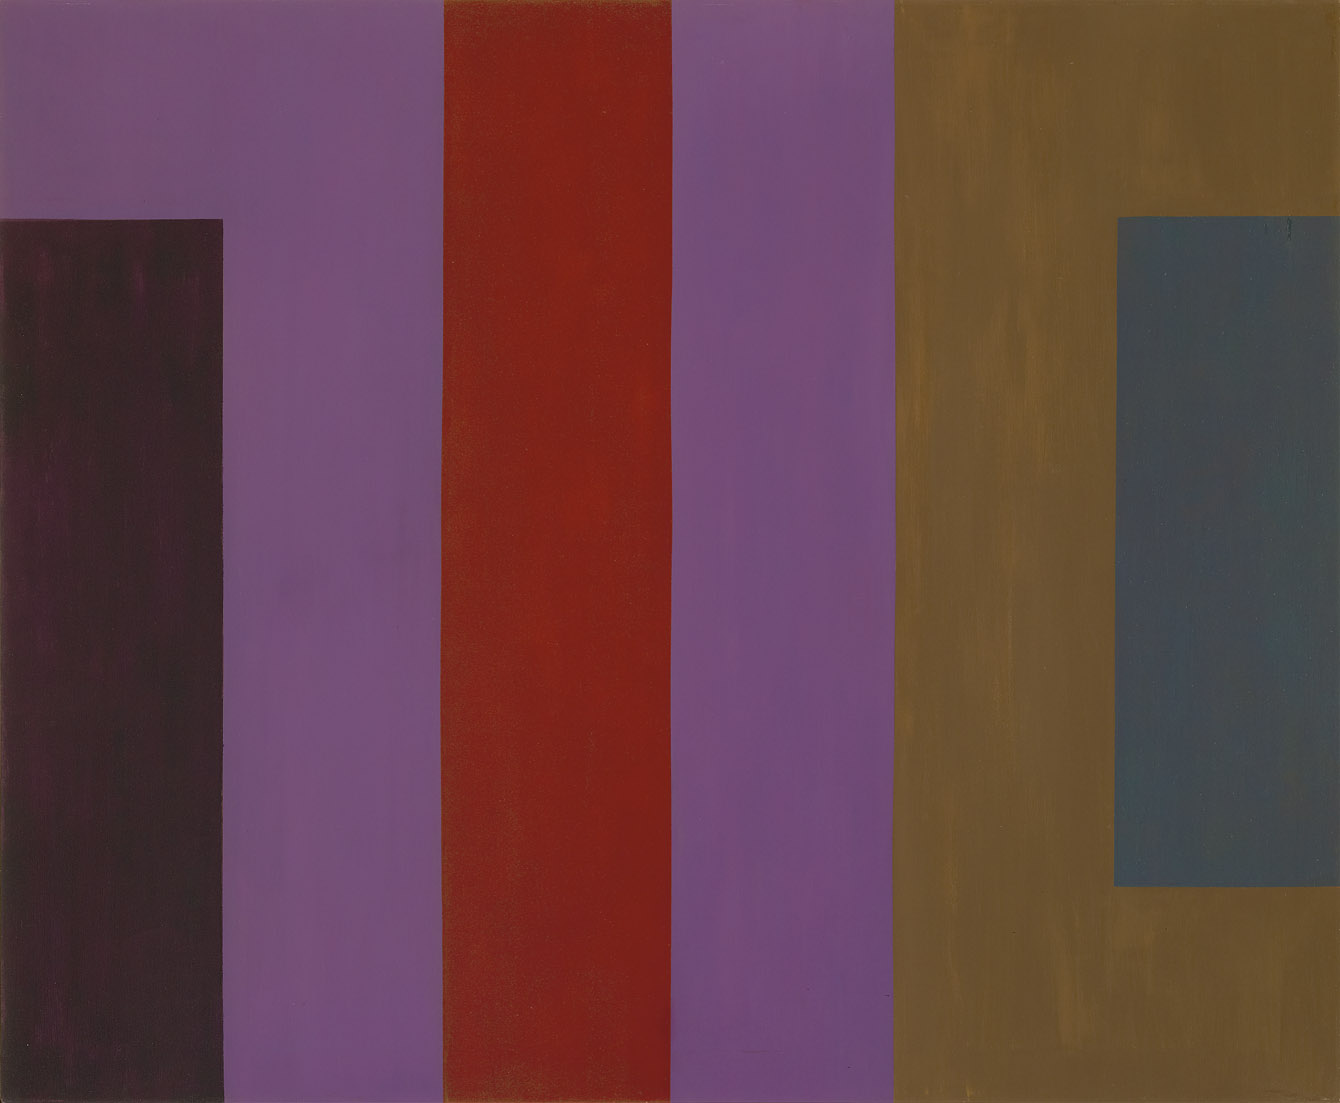 Dichotomic Organization , 1961  oil and enamel on canvas 50 x 60 inches; 127 x 152.4 centimeters